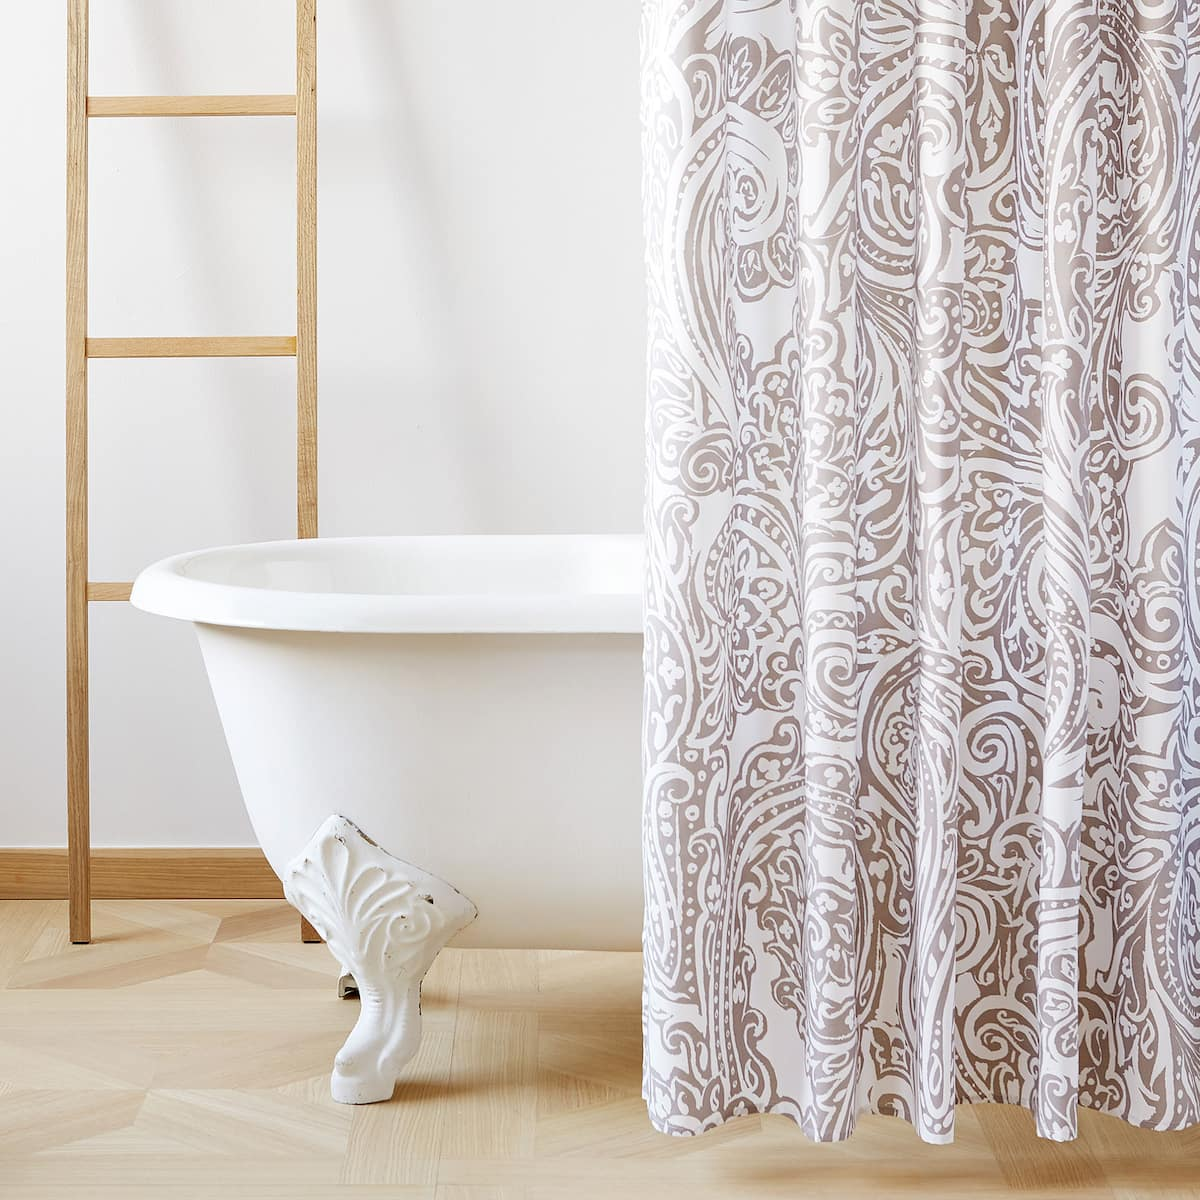 Image 1 Of The Product LARGE FLORAL DAMASK PRINT SHOWER CURTAIN